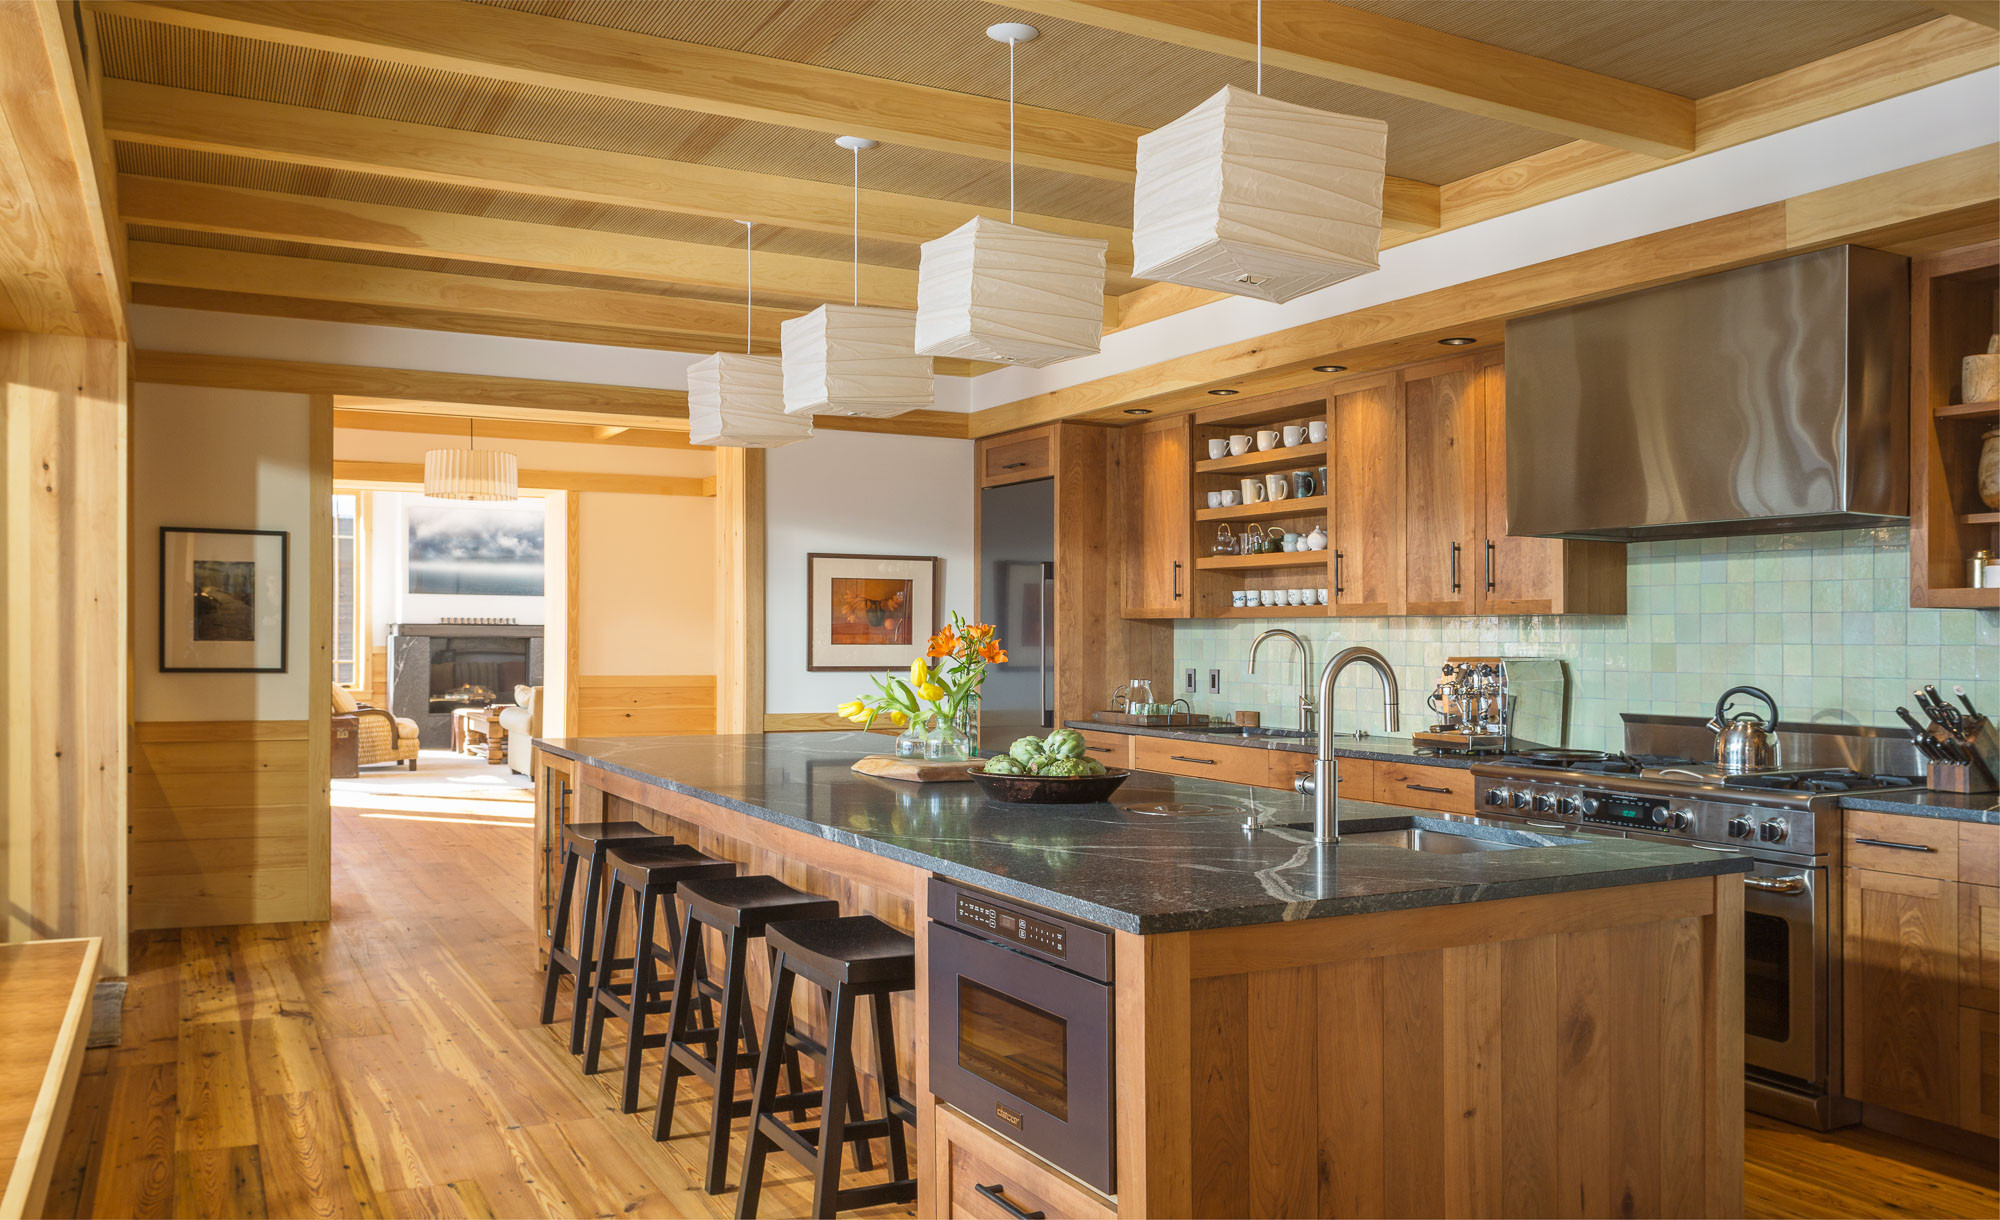 9 Beautiful Exposed Beam Kitchen Pictures & Ideas   June, 9 ...